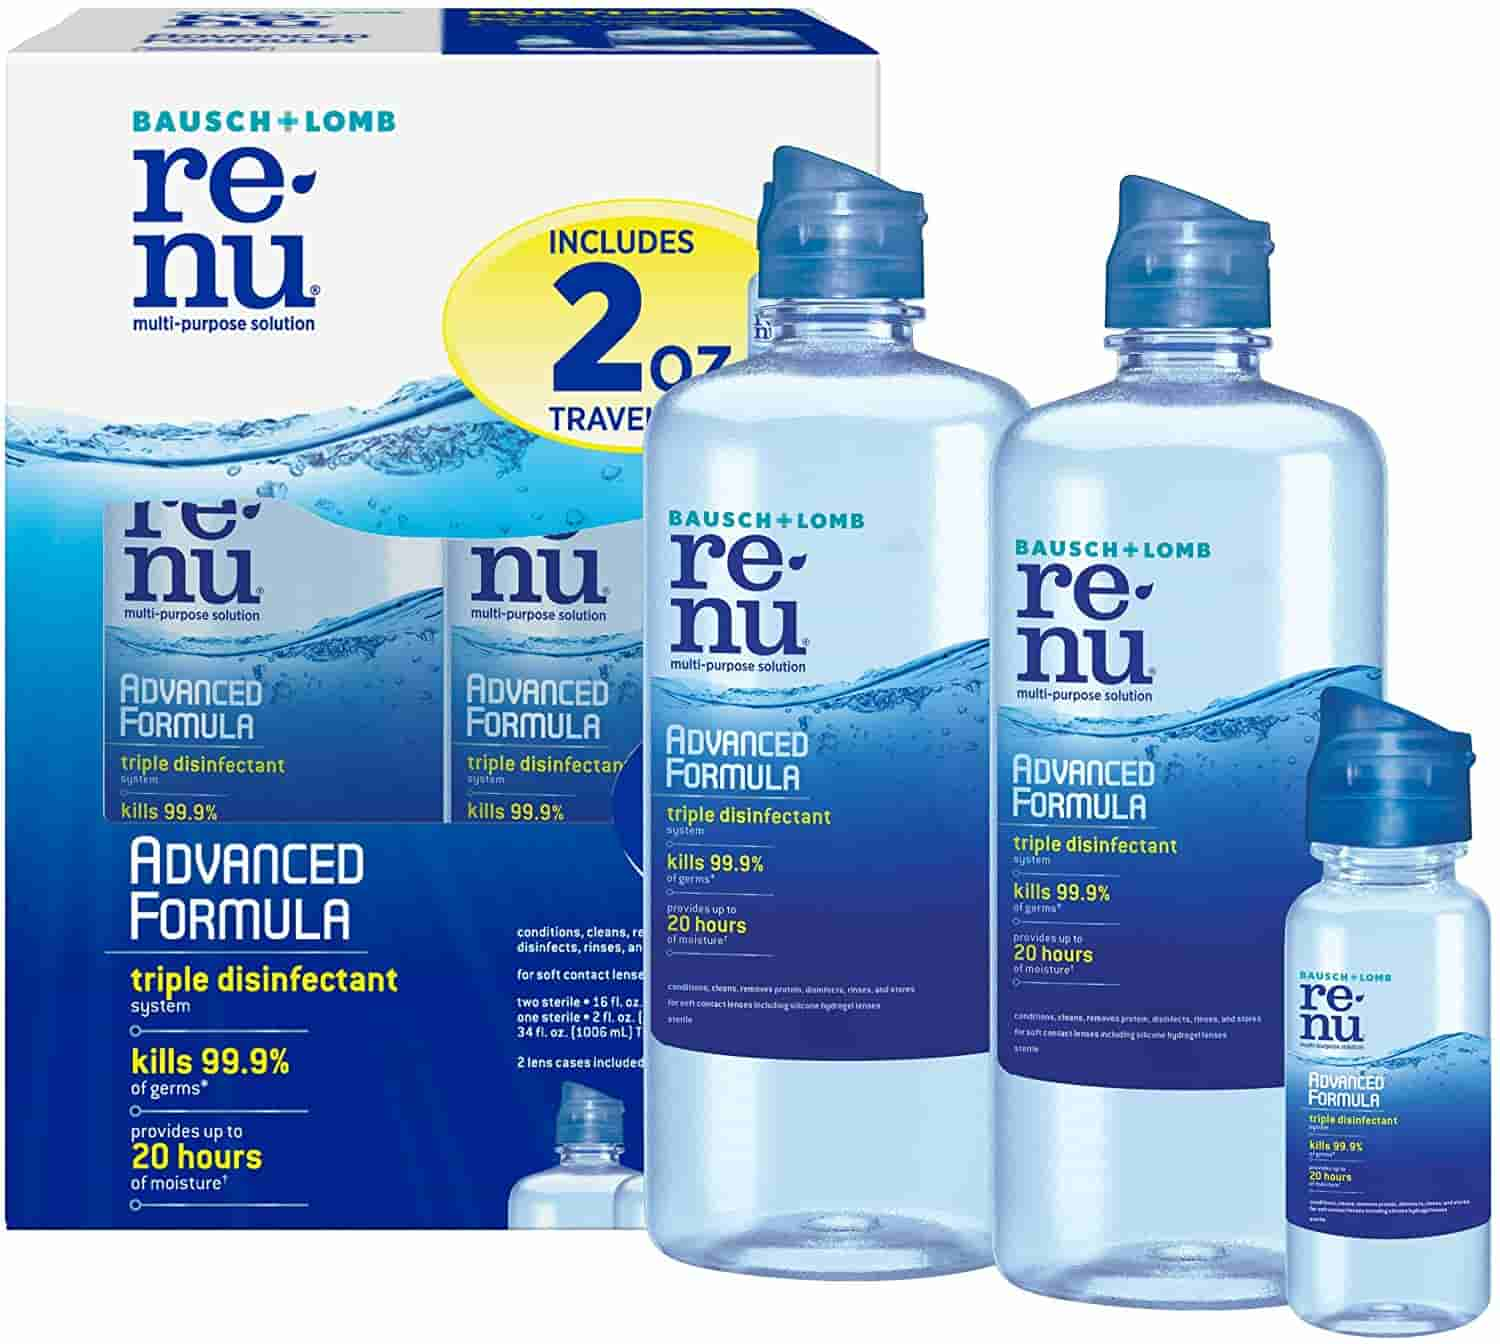 2 Full Size Bottles And A Travel Bottle Of Bausch Lomb Renu Advanced Triple Disinfect Contact Lens Solution For 9 98 From Amazon After 50 Off Coupon Dansdeals Com